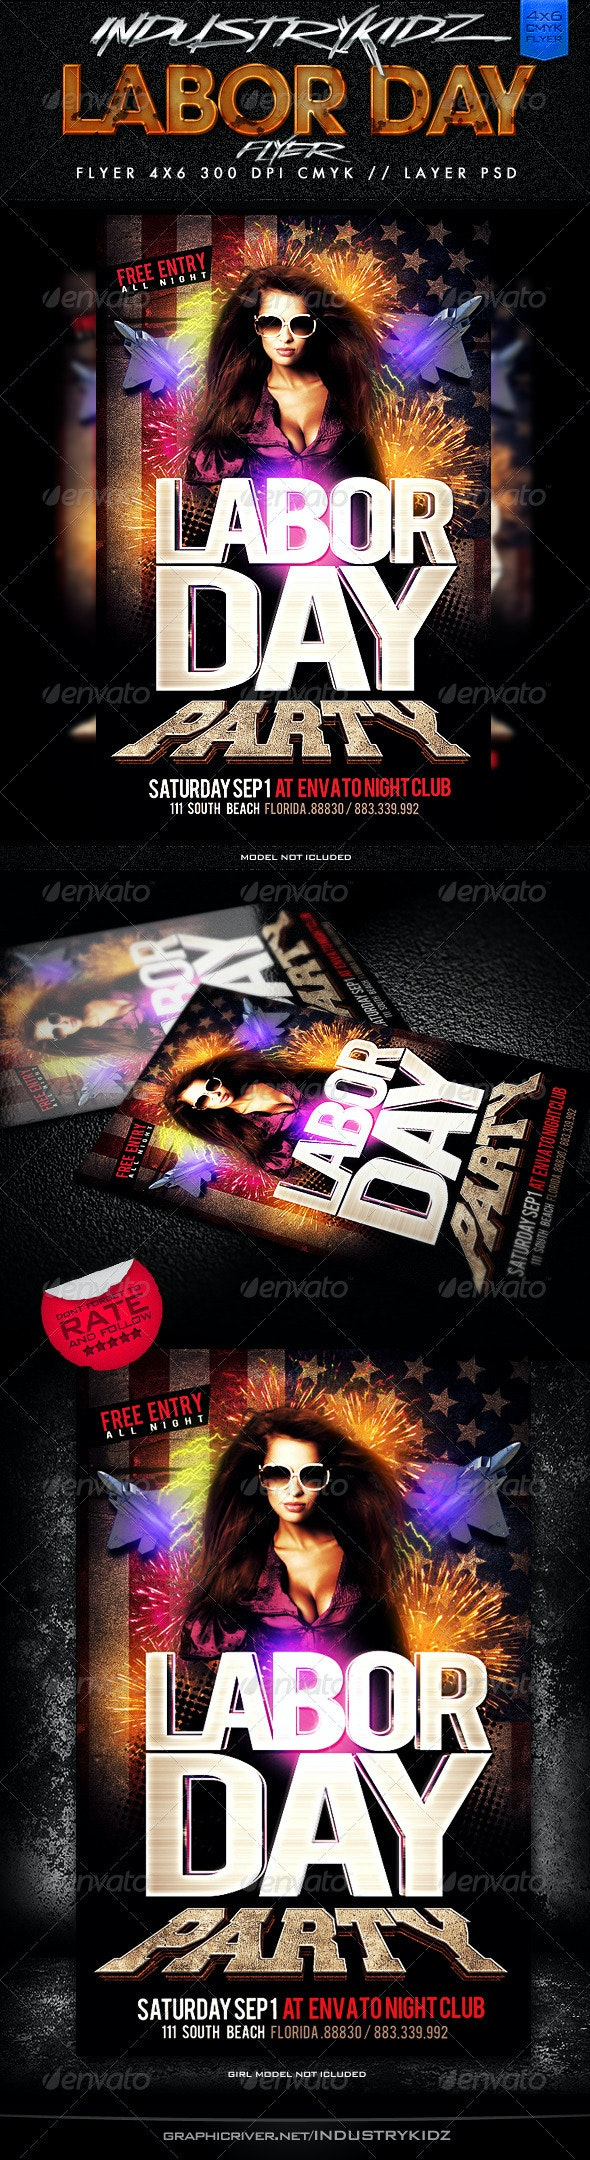 Labor Day Party Flyer Template - Holidays Events